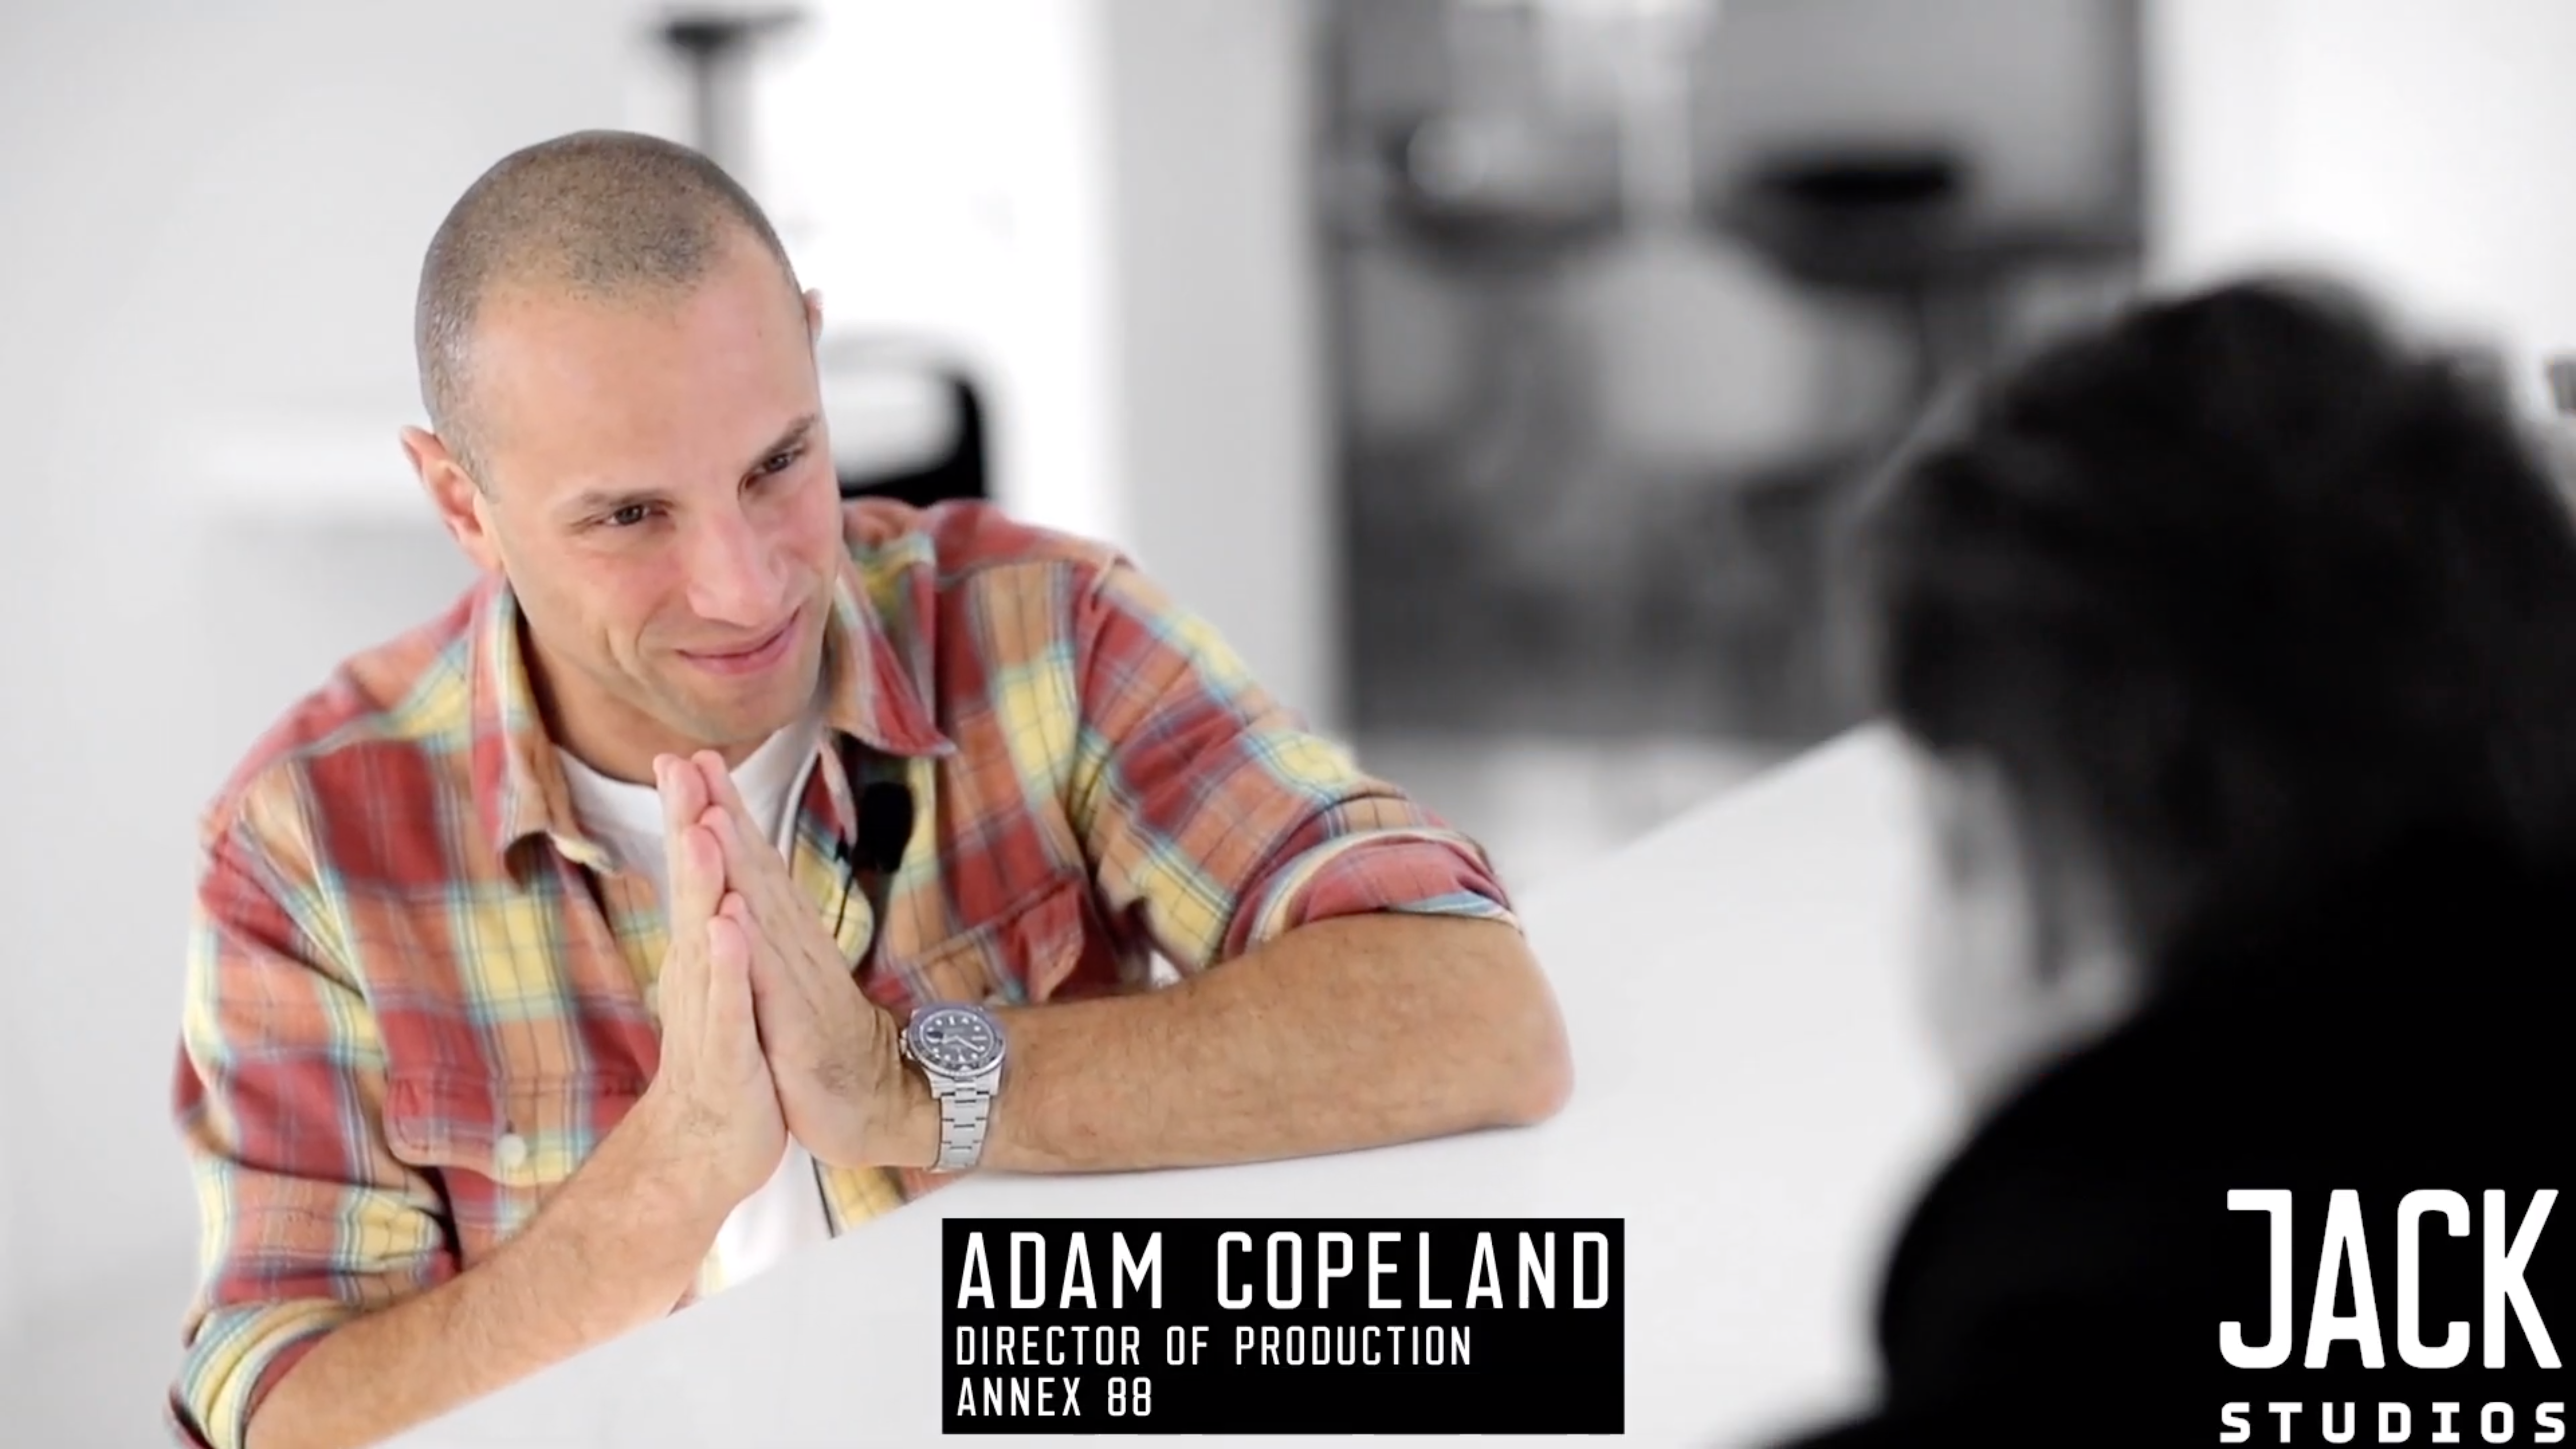 Cafe Talks Episode 3 with Adam Copeland